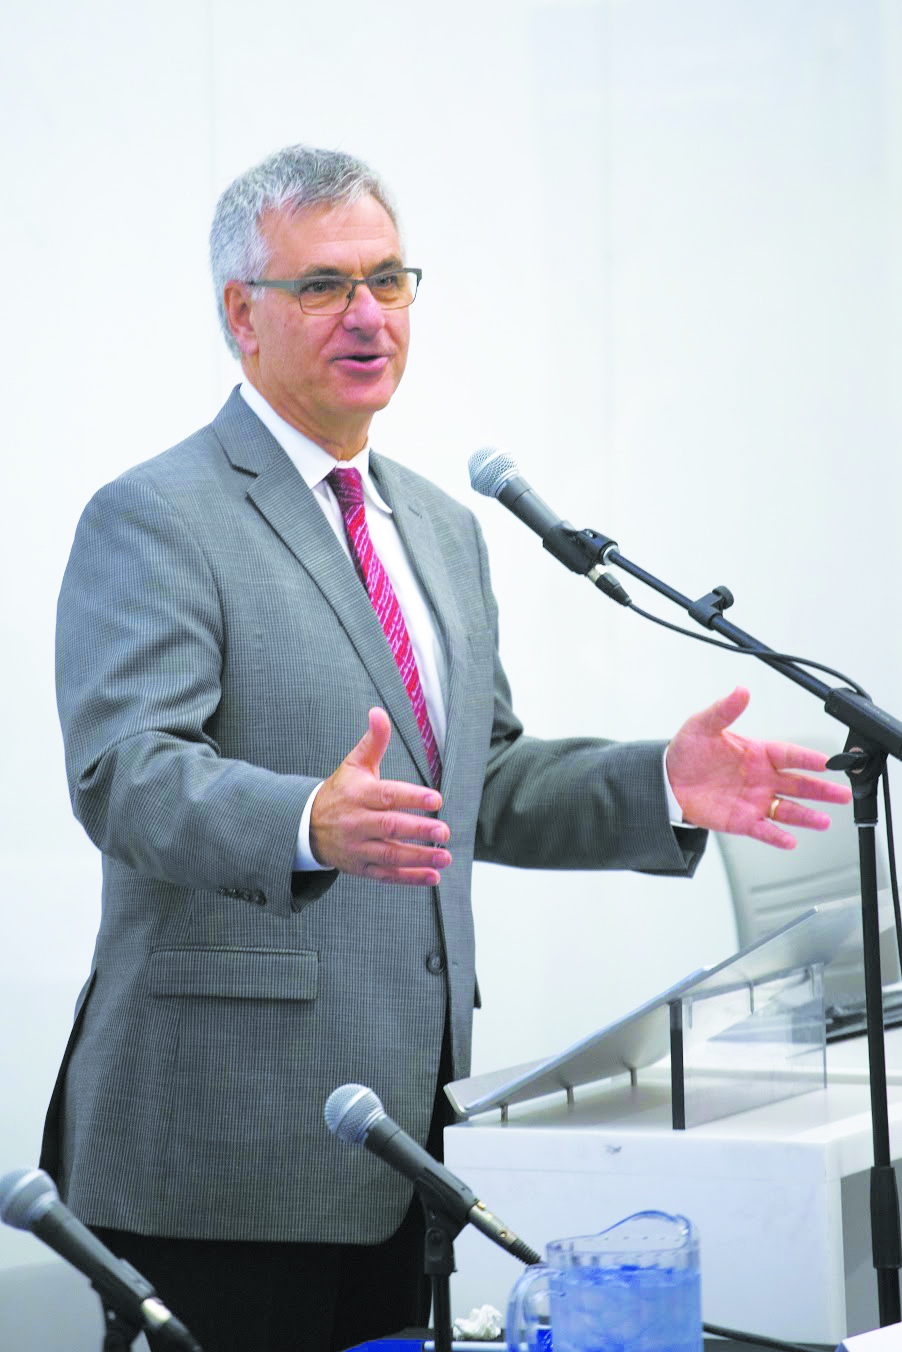 Pictured here: quebec MP Jean-Marc Fournier,Minister of Canadian Relations and the Canadian Francophonie.